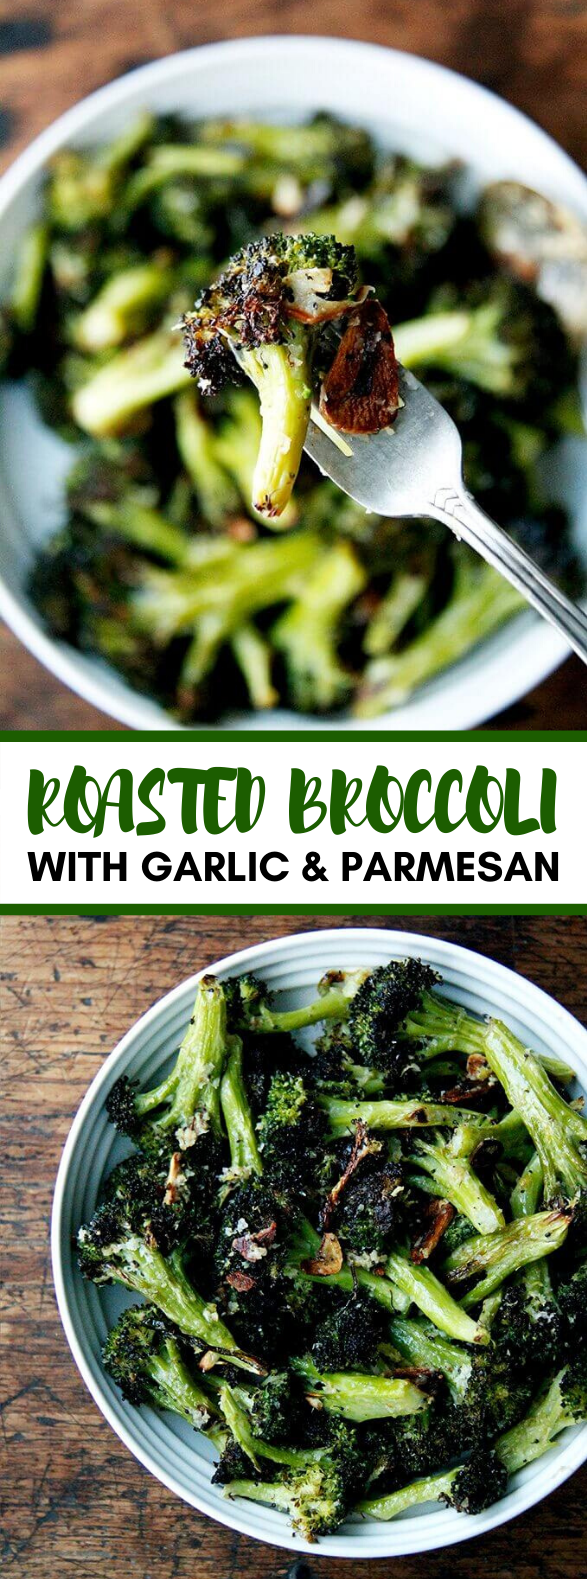 Ina Garten's Roasted Broccoli with Garlic, Lemon and Parmesan #vegetarian #vegetables